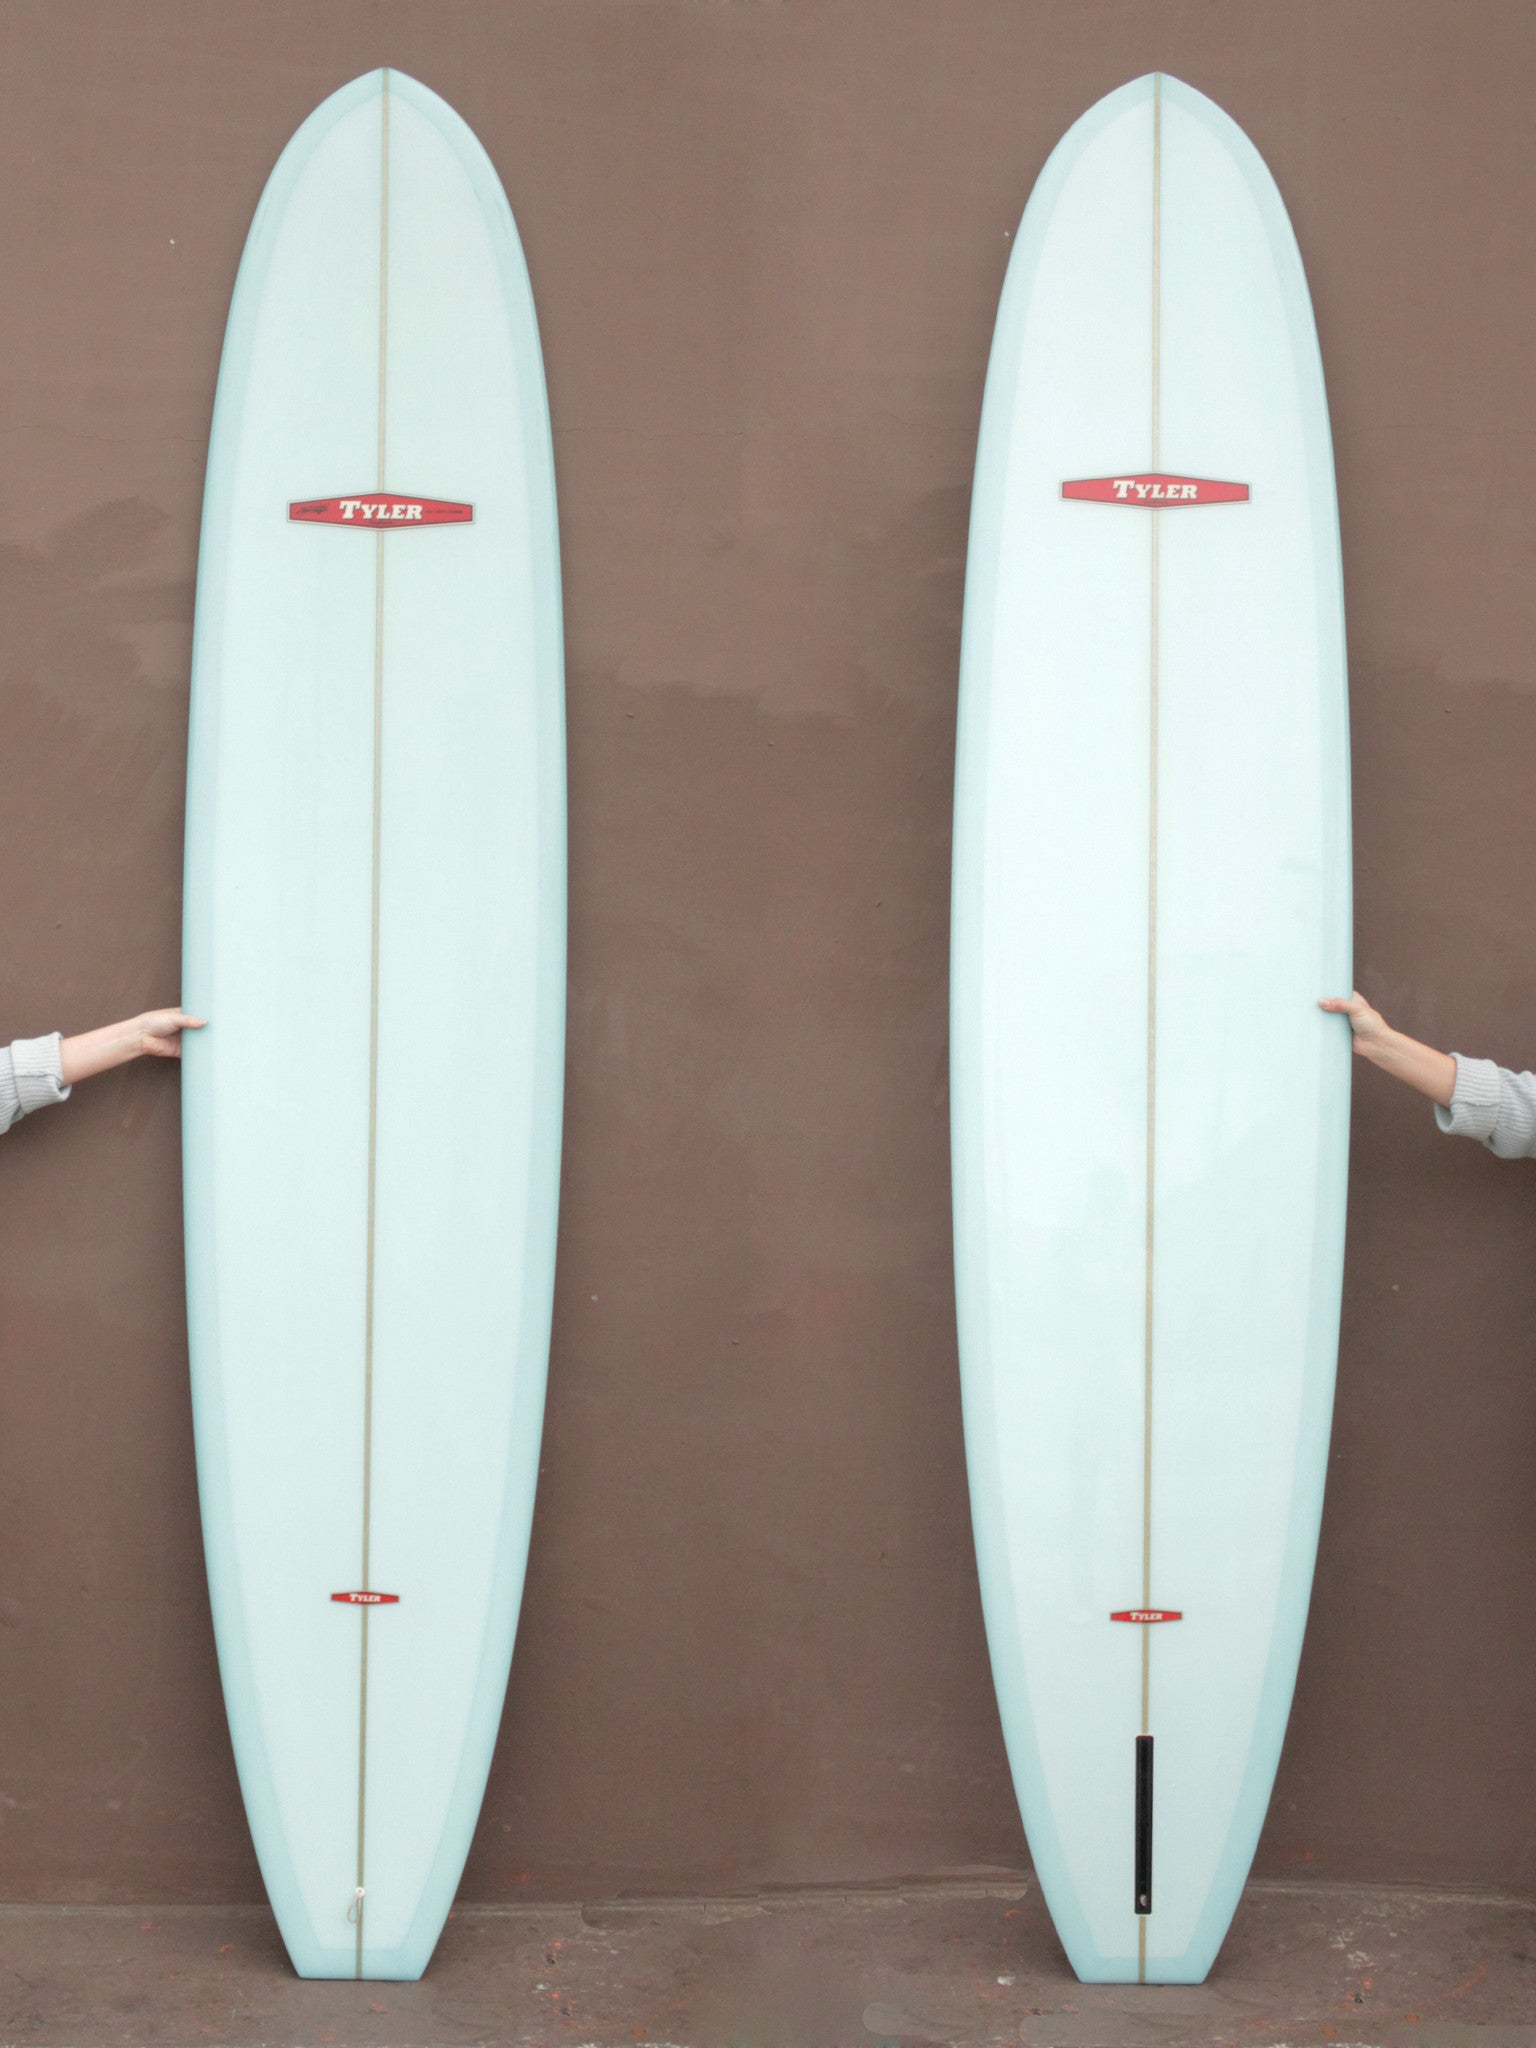 9'9 Tyler Wingnose (Used)